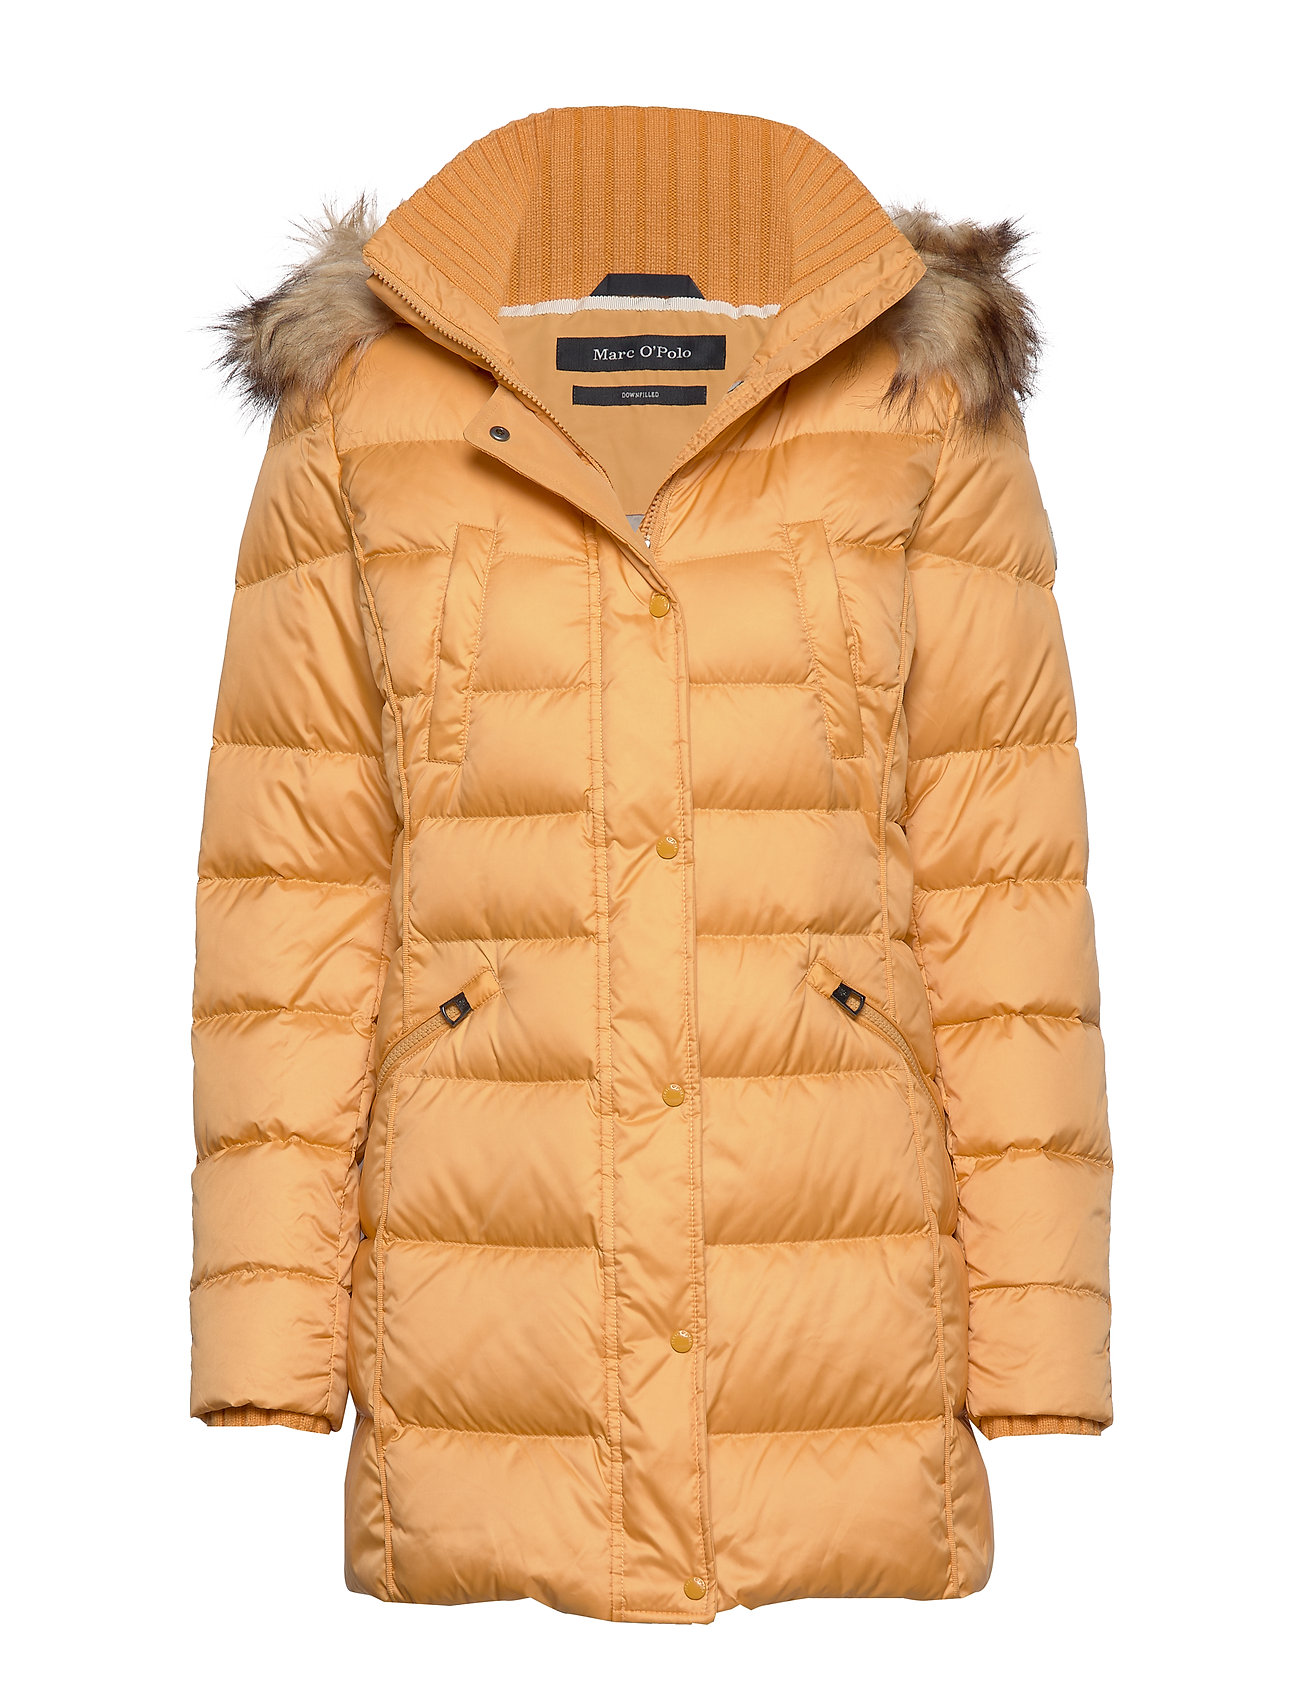 Marc O'Polo Coat, down filled, parka, detachabl - AMBER WHEAT